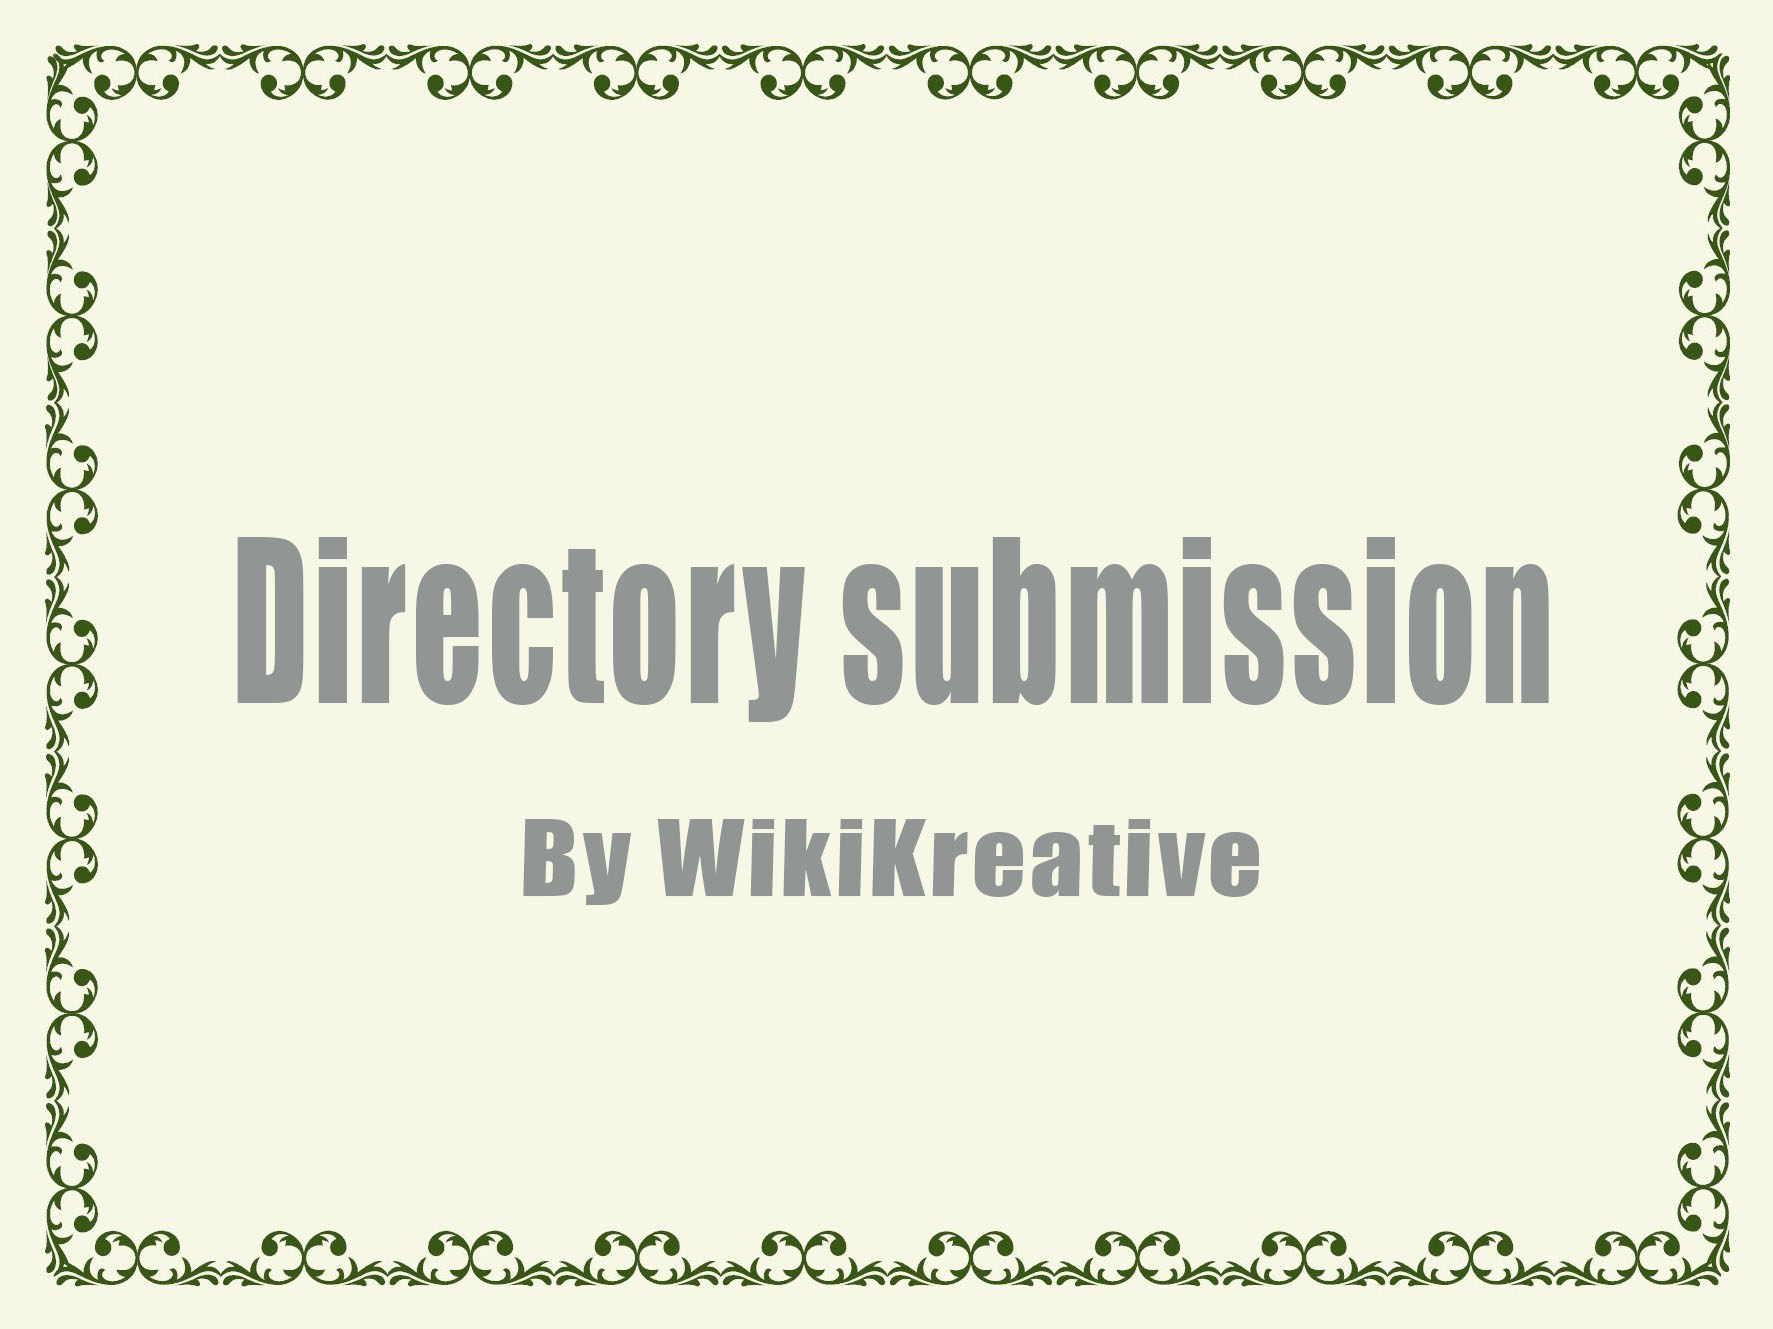 Traditional Directory Submission